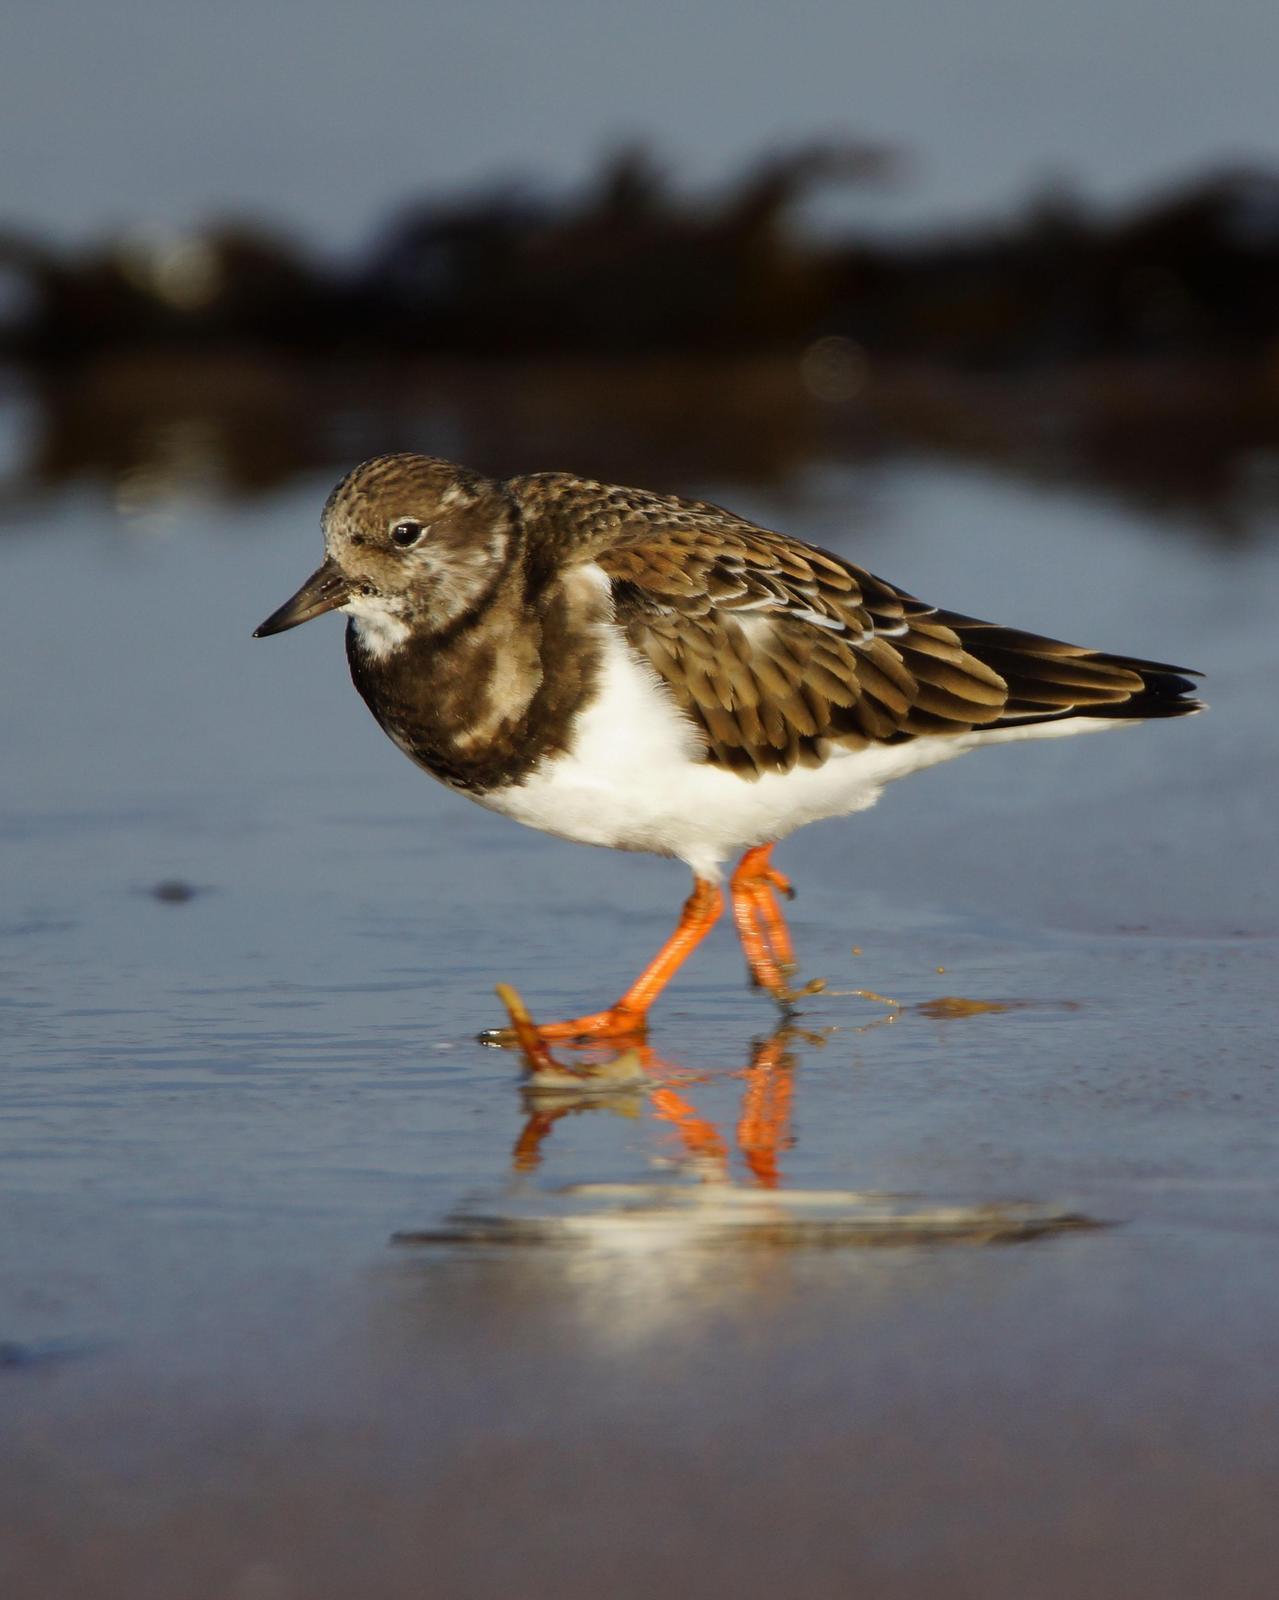 Ruddy Turnstone Photo by Steve Percival